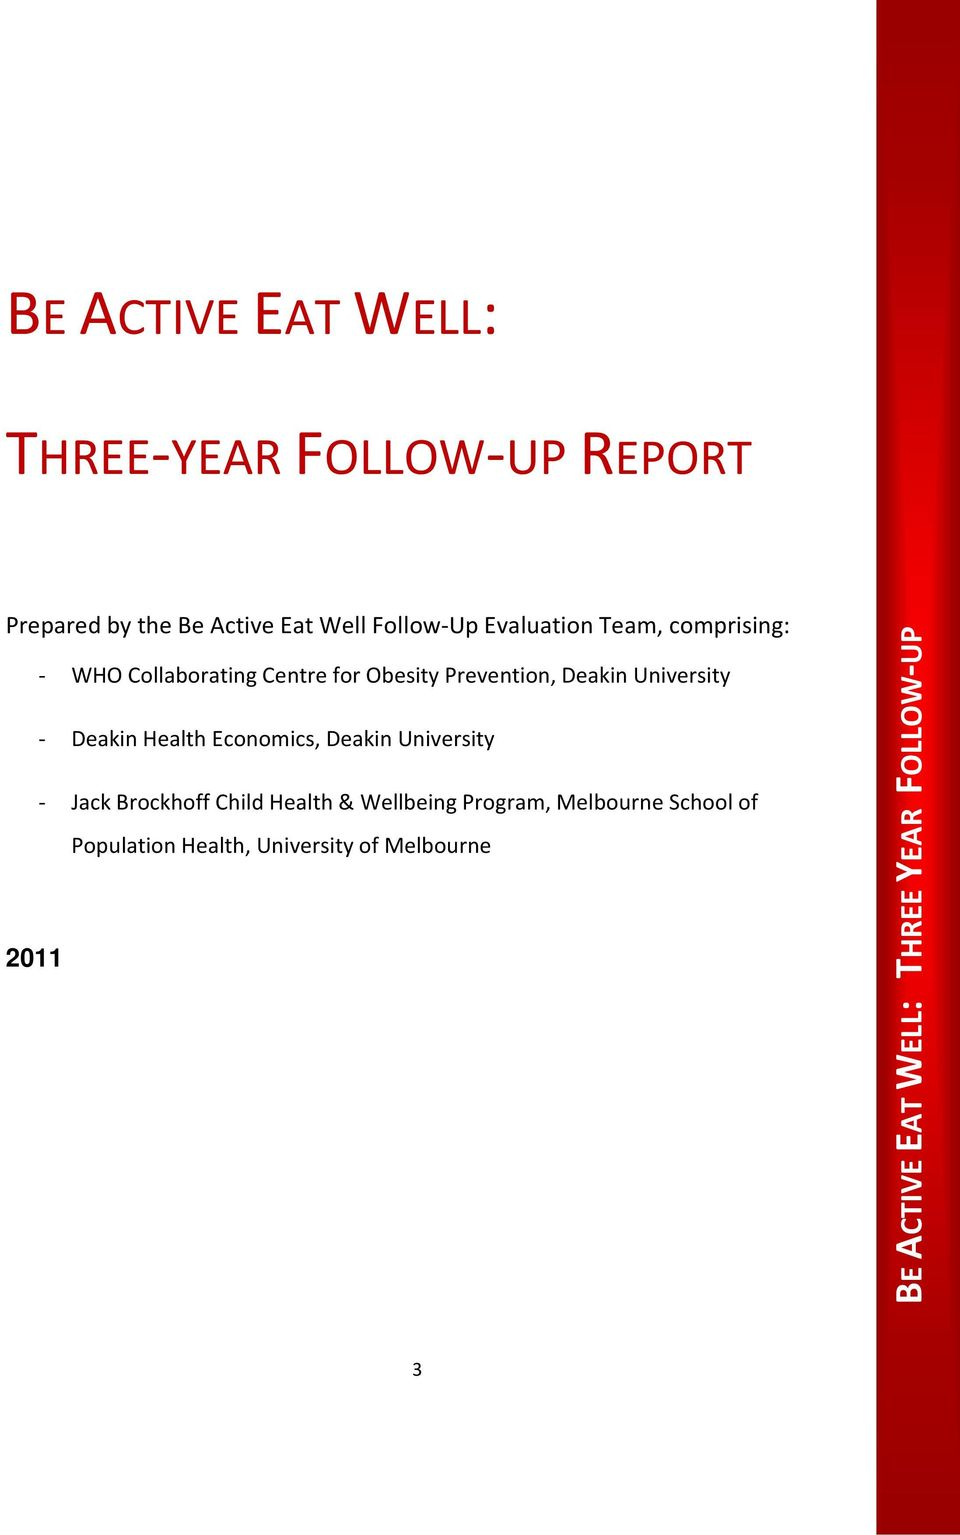 Prevention, Deakin University - Deakin Health Economics, Deakin University - Jack